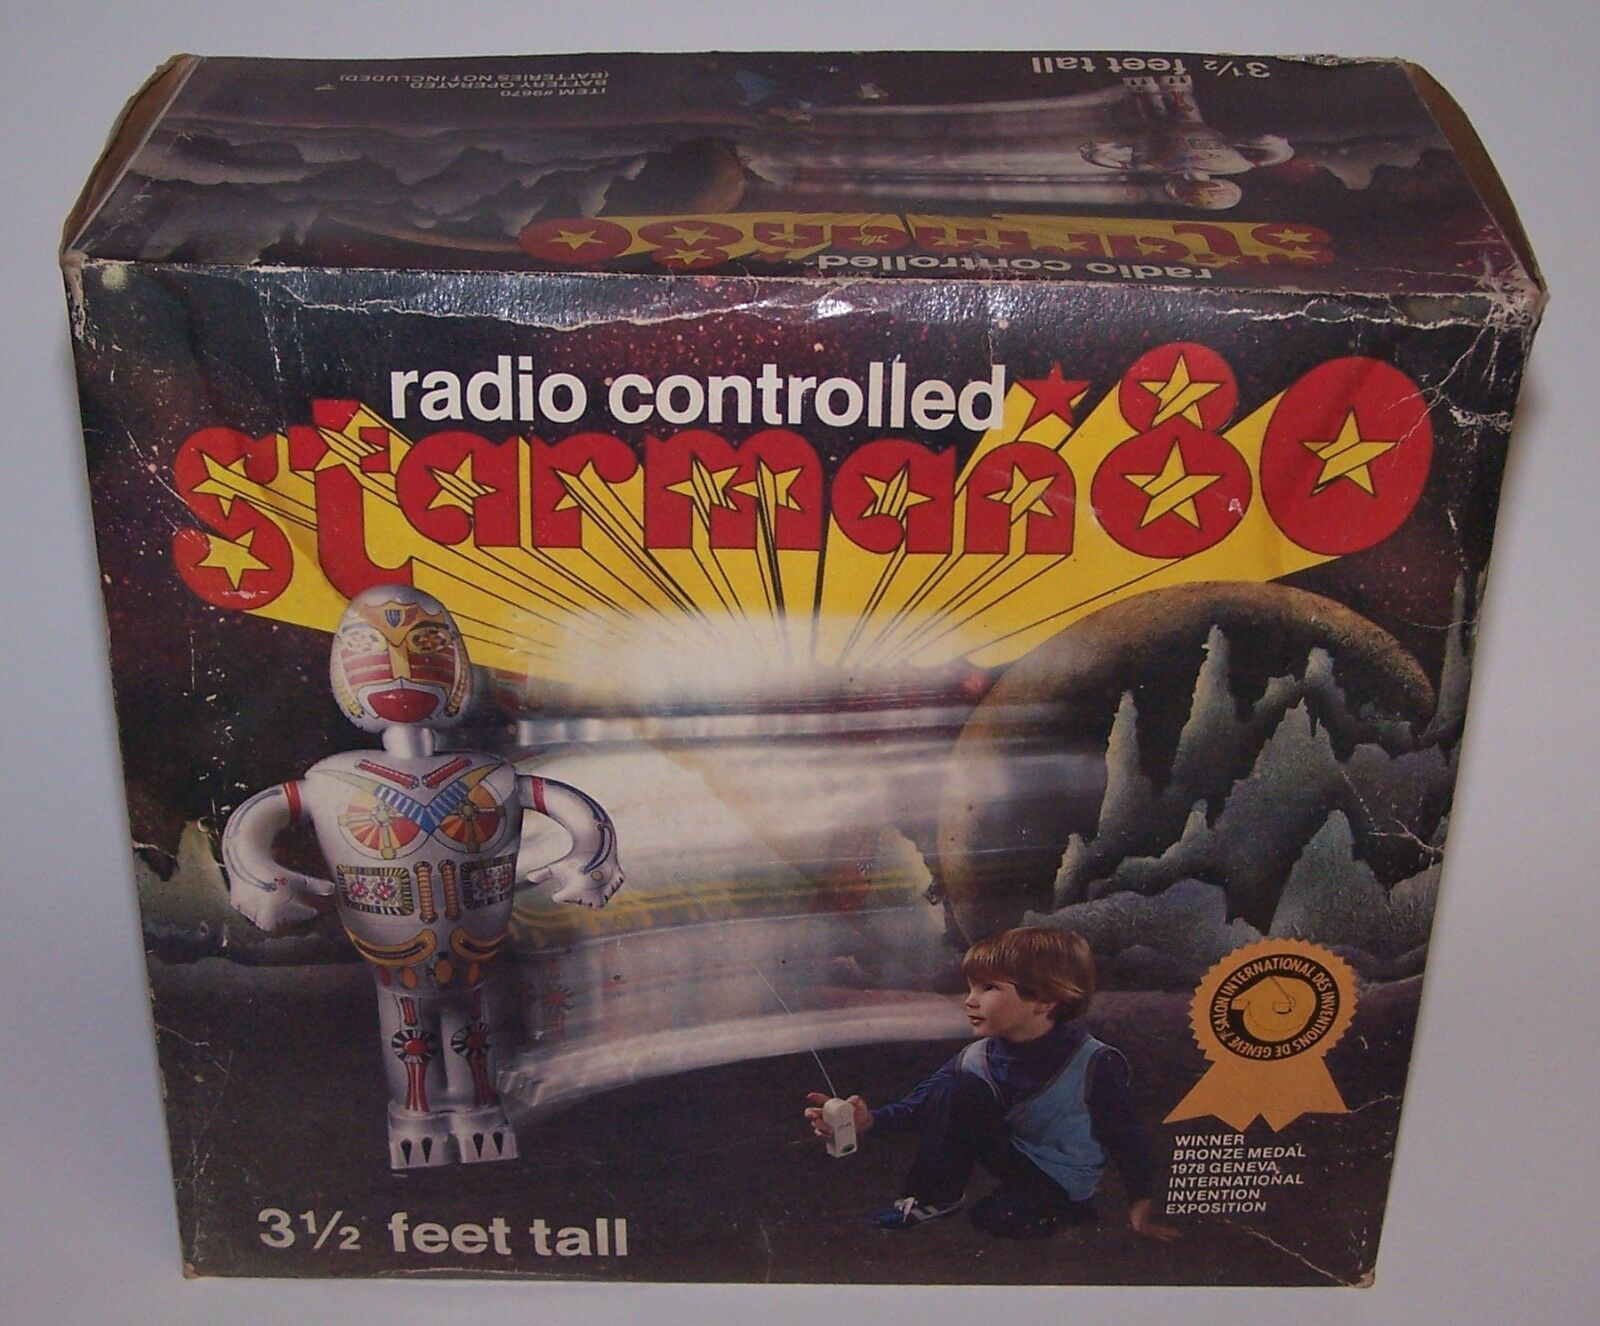 Starman 80 Electronic Remote Controlled Blow Up Robot 3.5 Feet Tall 1979 NIB